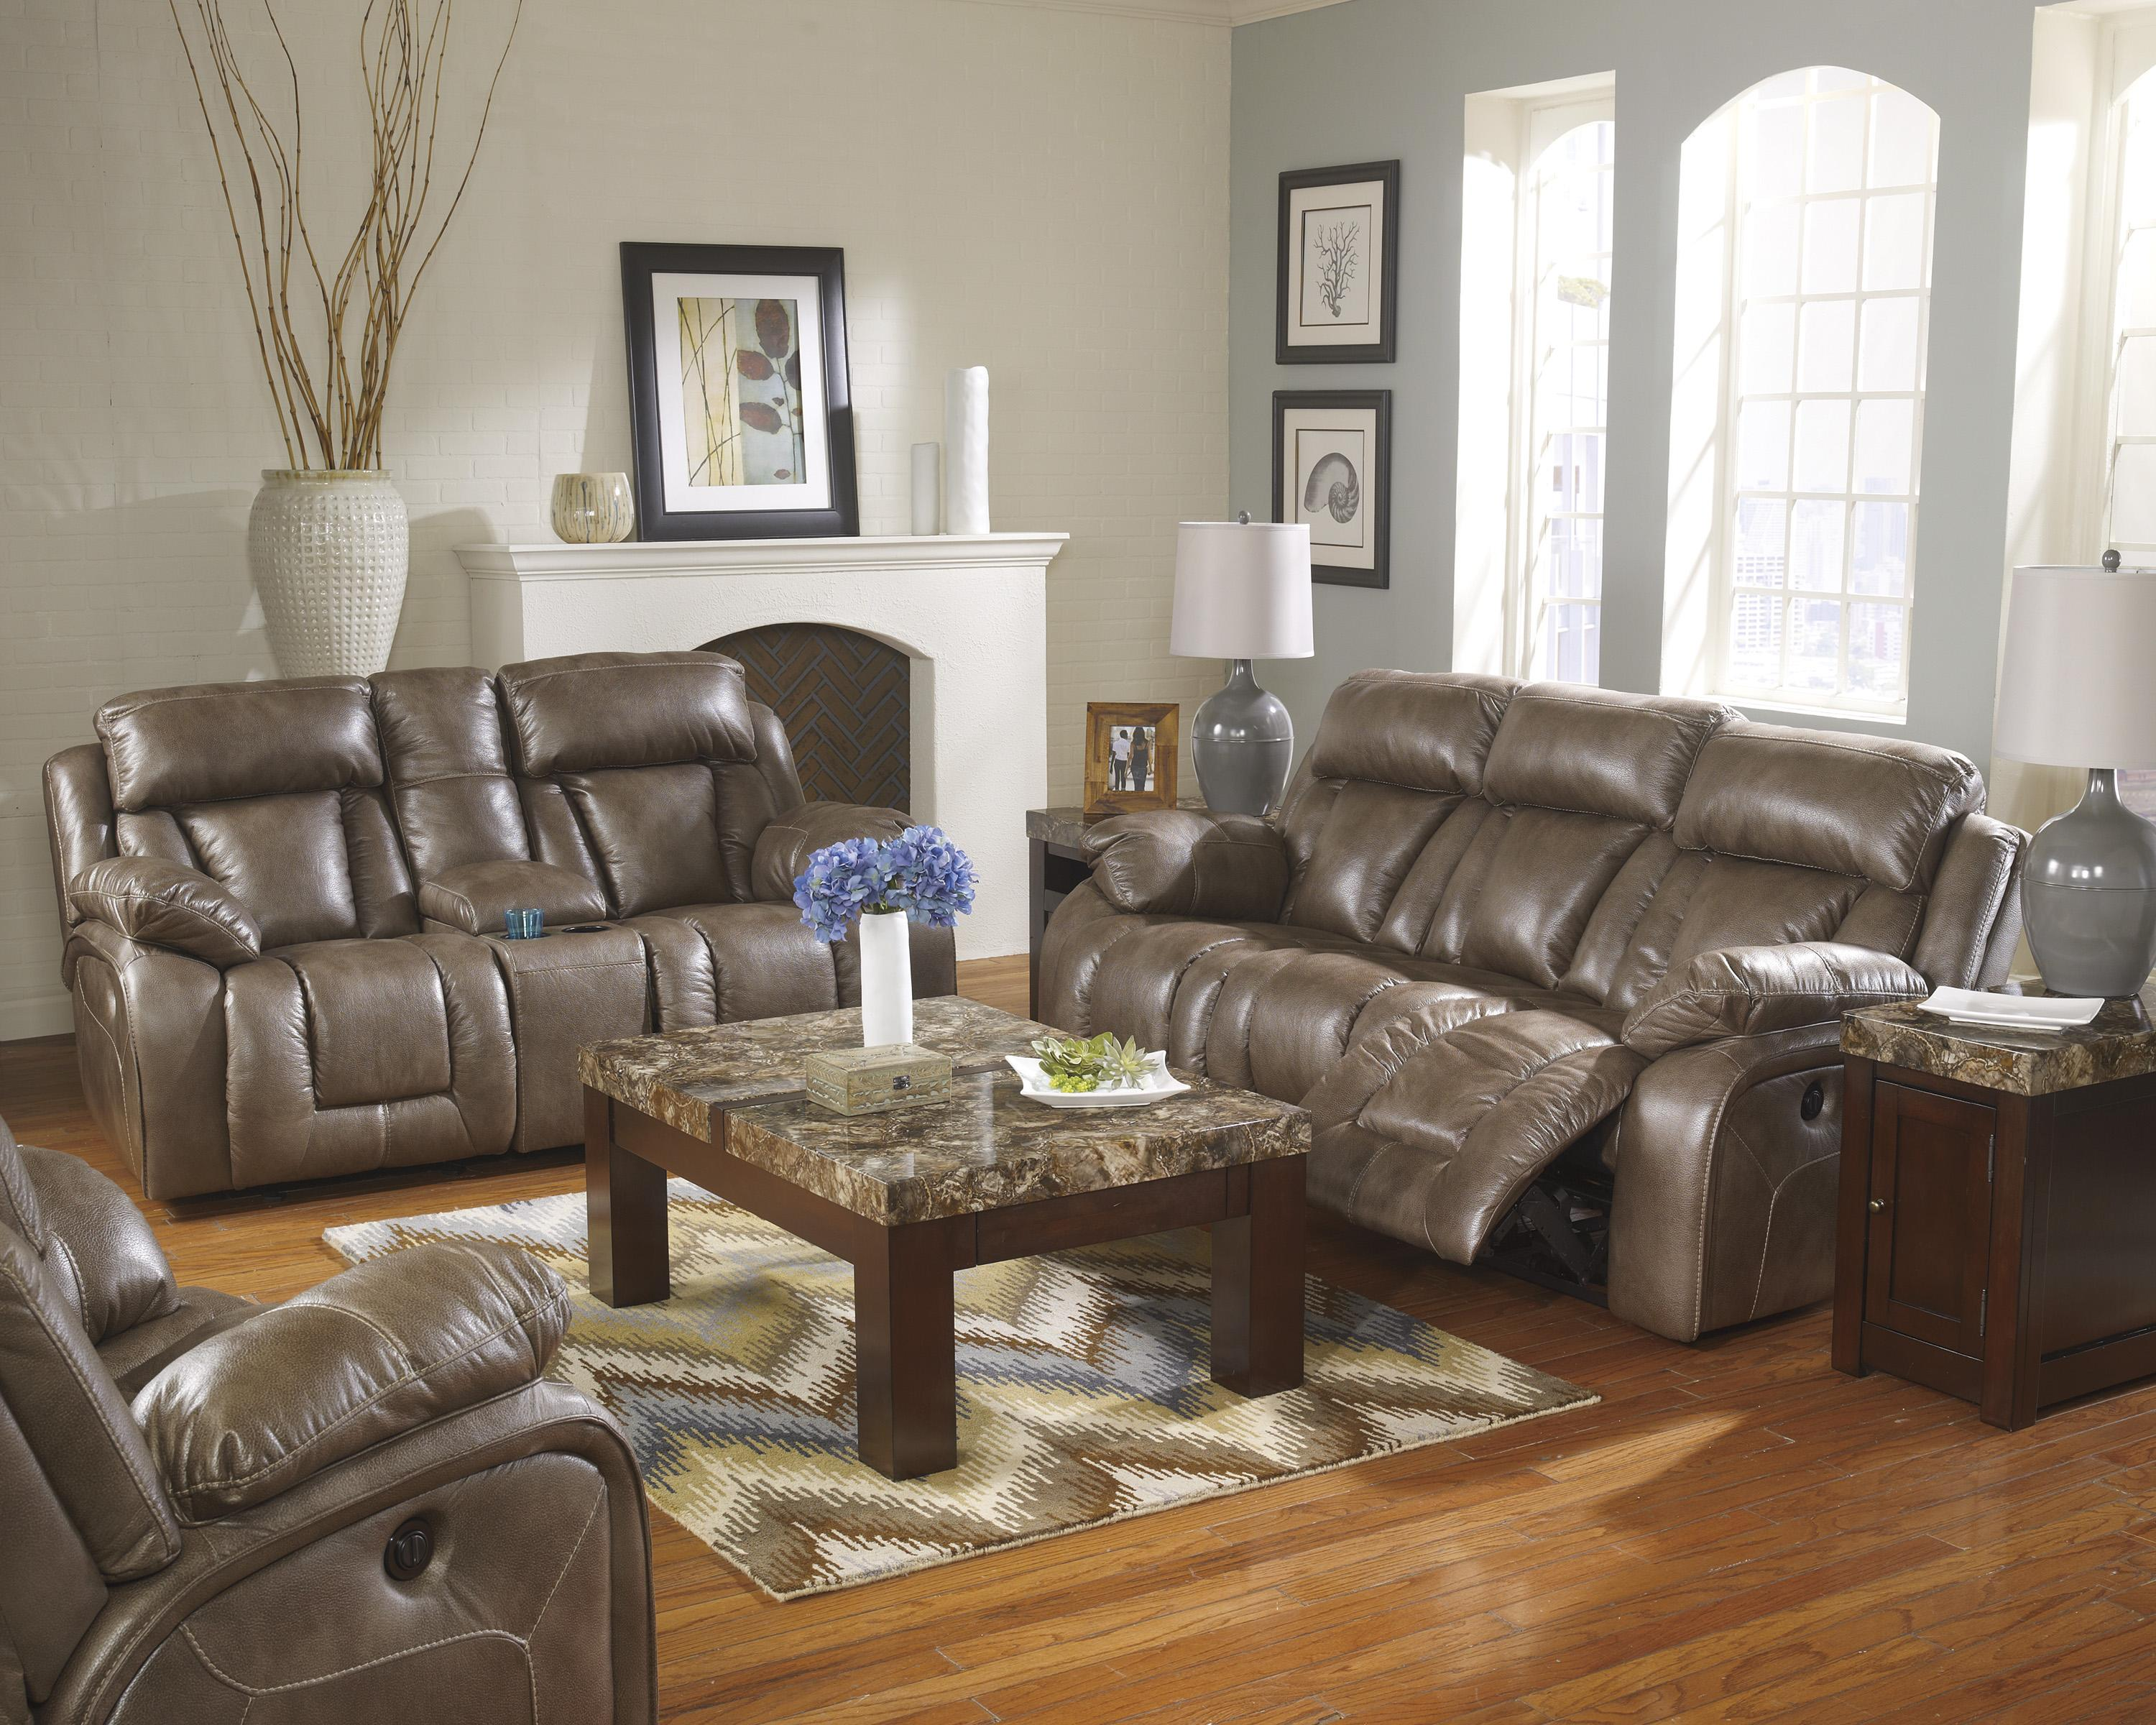 Ashley Furniture Loral - Sable Reclining Living Room Group - Item Number: 42200 Living Room Group 5